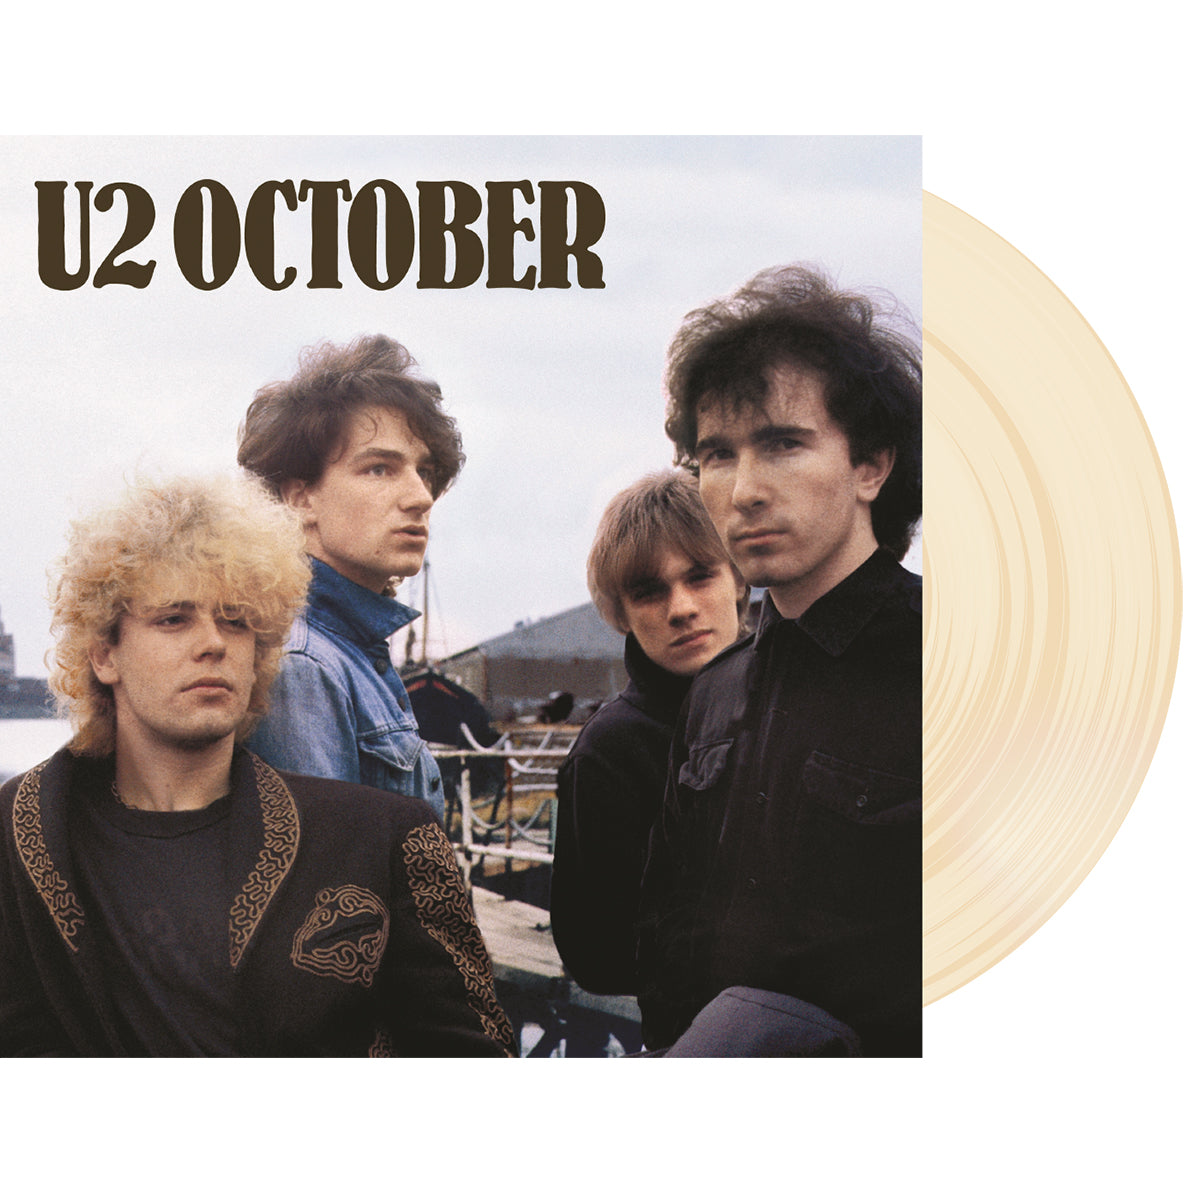 October Limited Edition Cream Vinyl